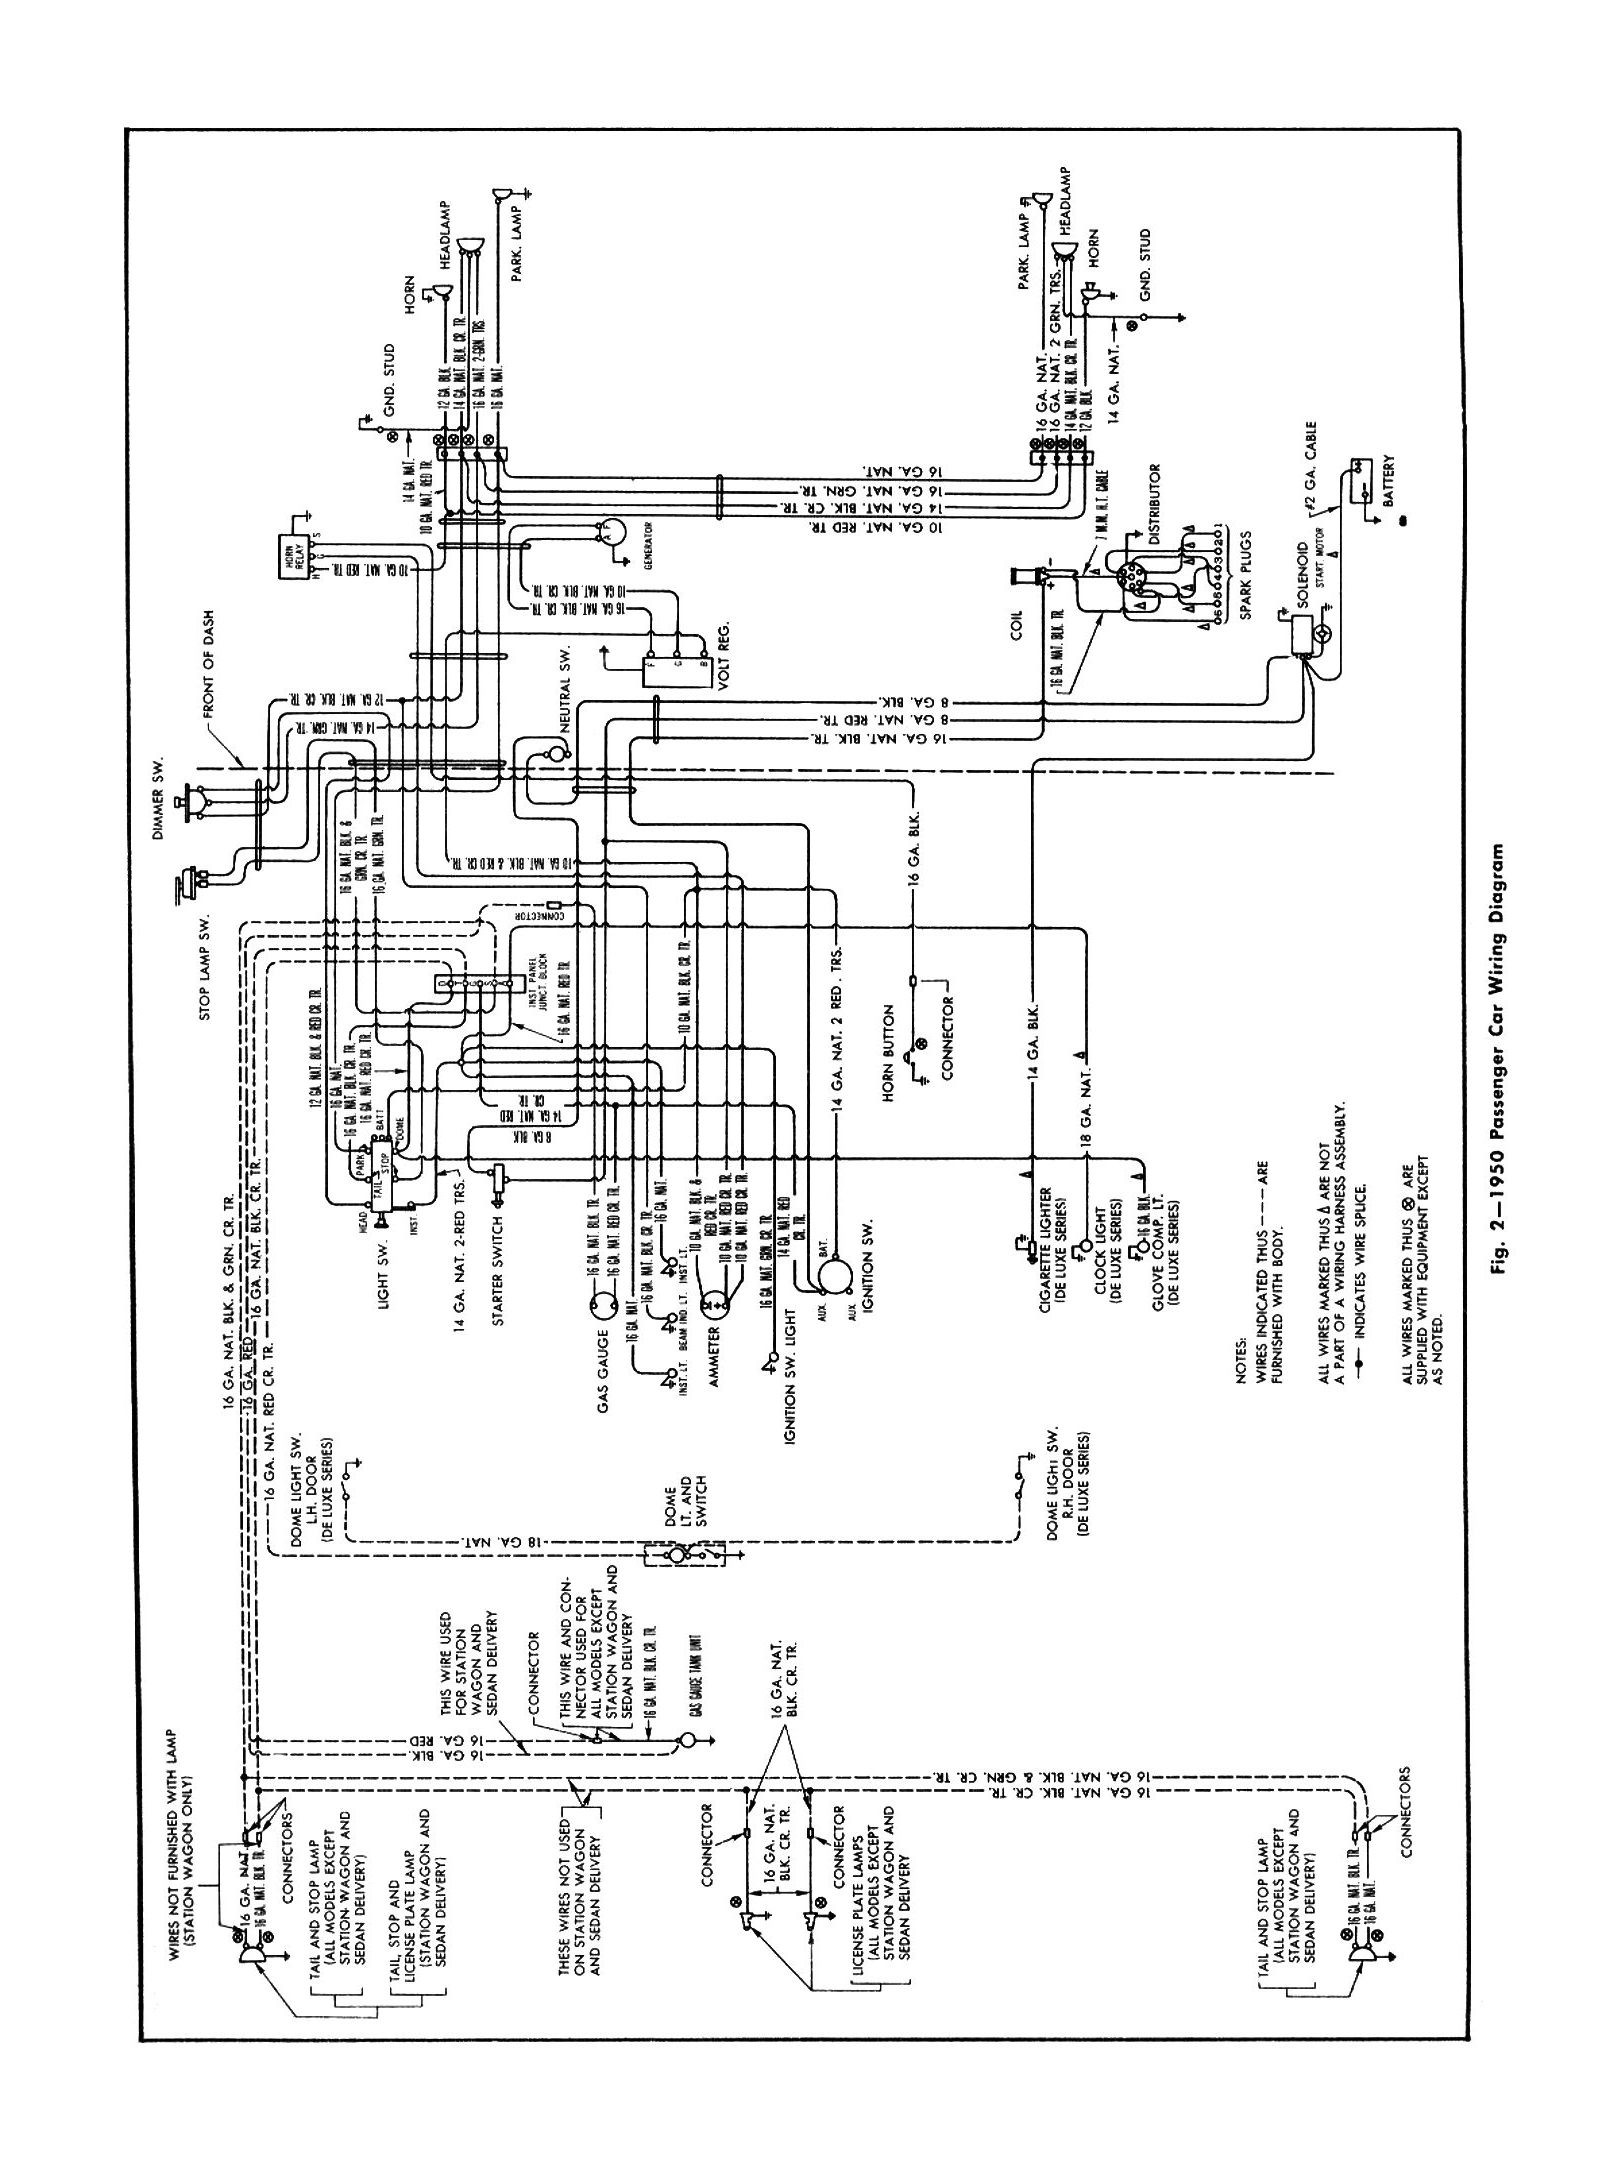 1950 Chevy Ignition Switch Wiring - Wiring Diagrams • on 1957 chevrolet ignition diagram, 1957 horn diagram, 1957 chevy fuse box diagram, ignition switch schematic diagram, distributor wiring diagram,